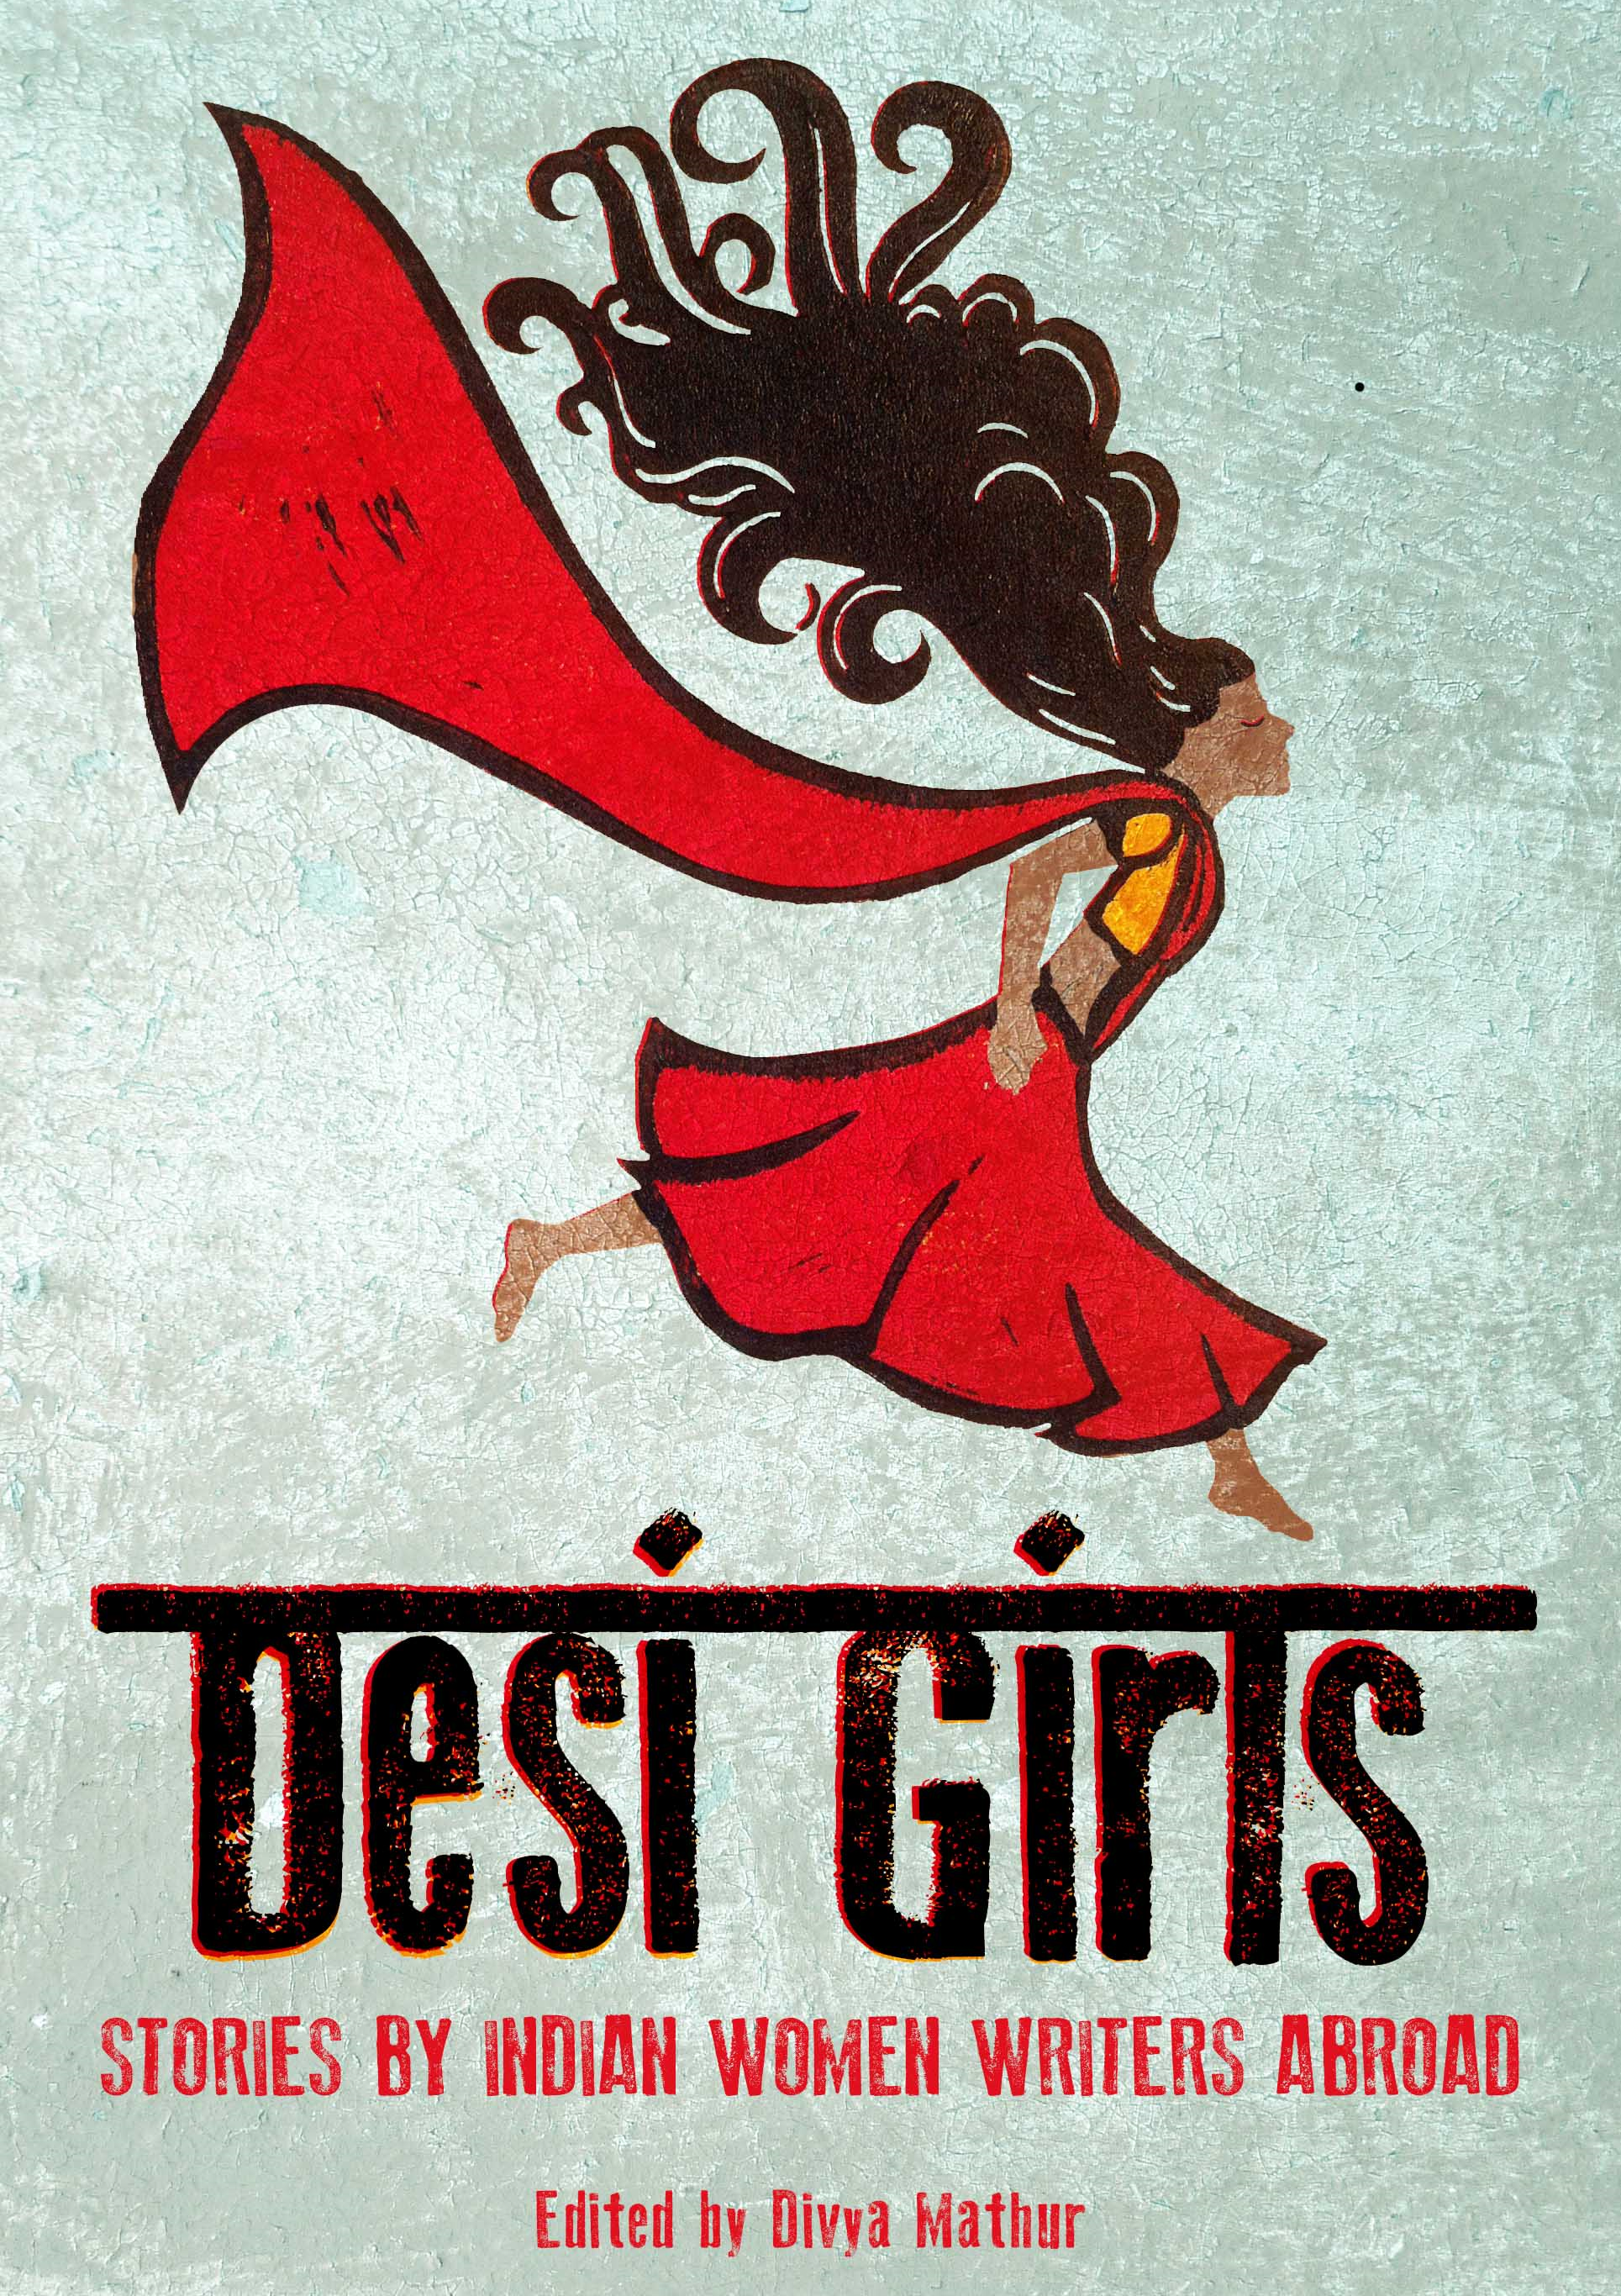 Desi Girls Stories By Indian Women Writers Abroad